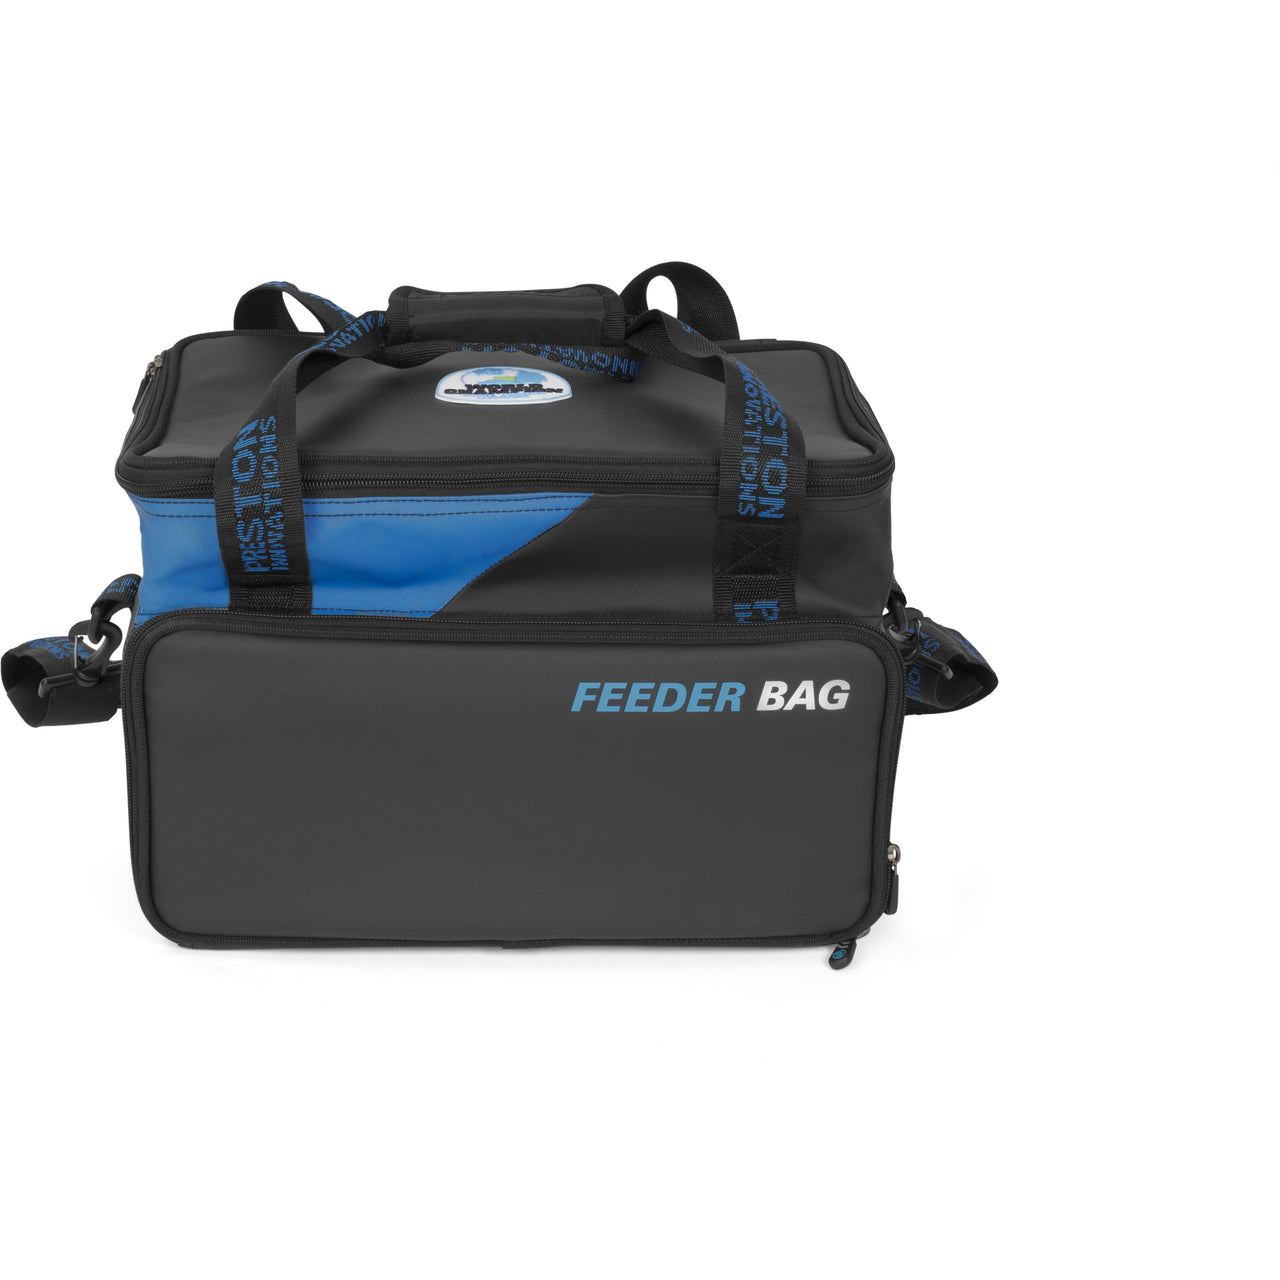 World Champion Feeder Bag